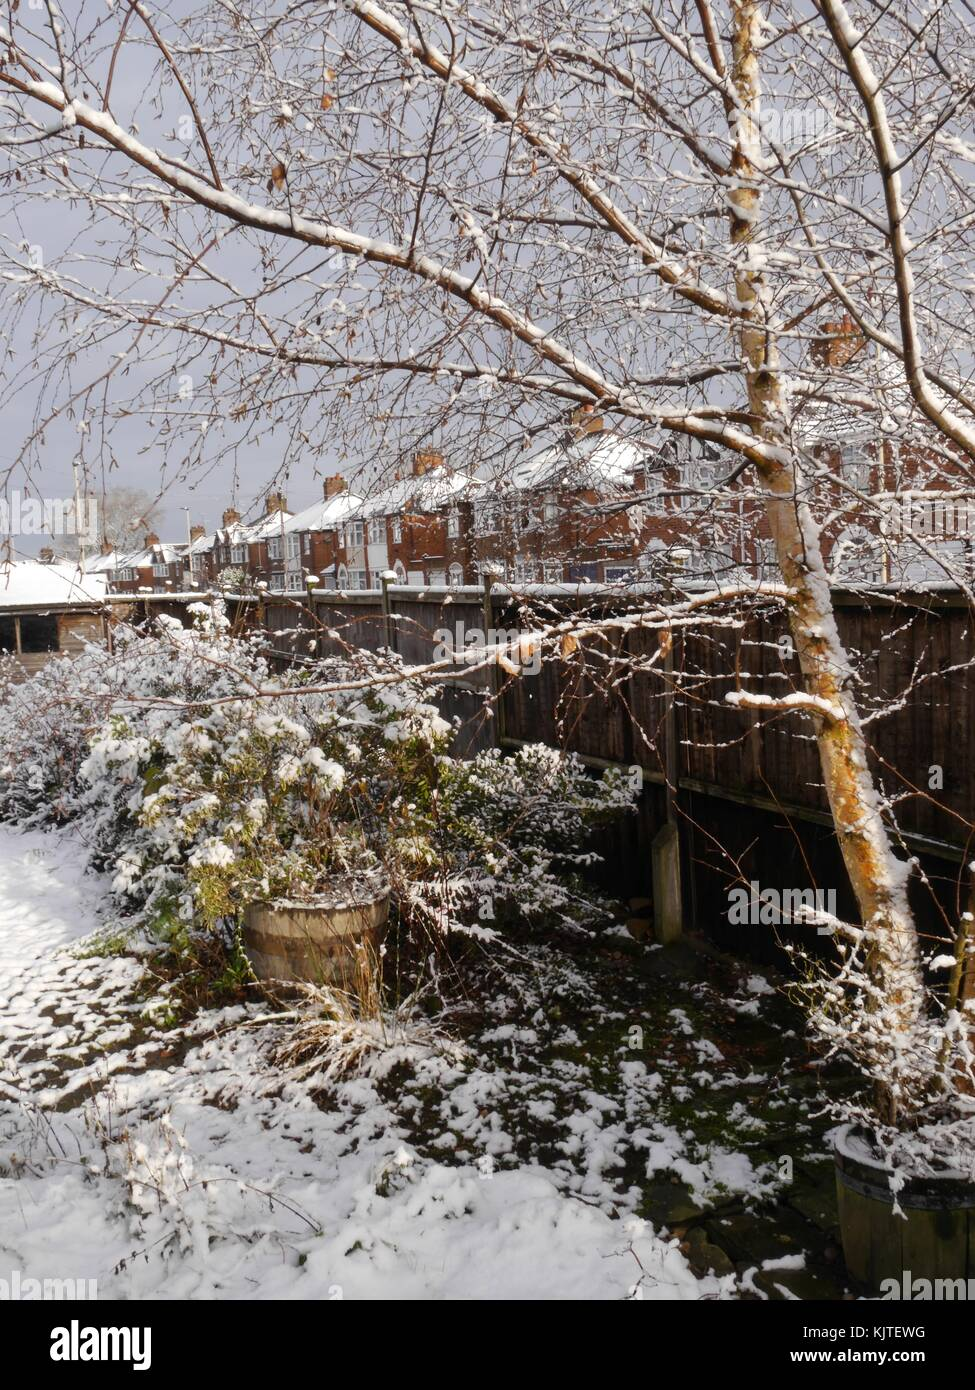 Snow-covered garden in suburb of city of Leicester in English Midlands with lovely snowy tree on the right and a - Stock Image